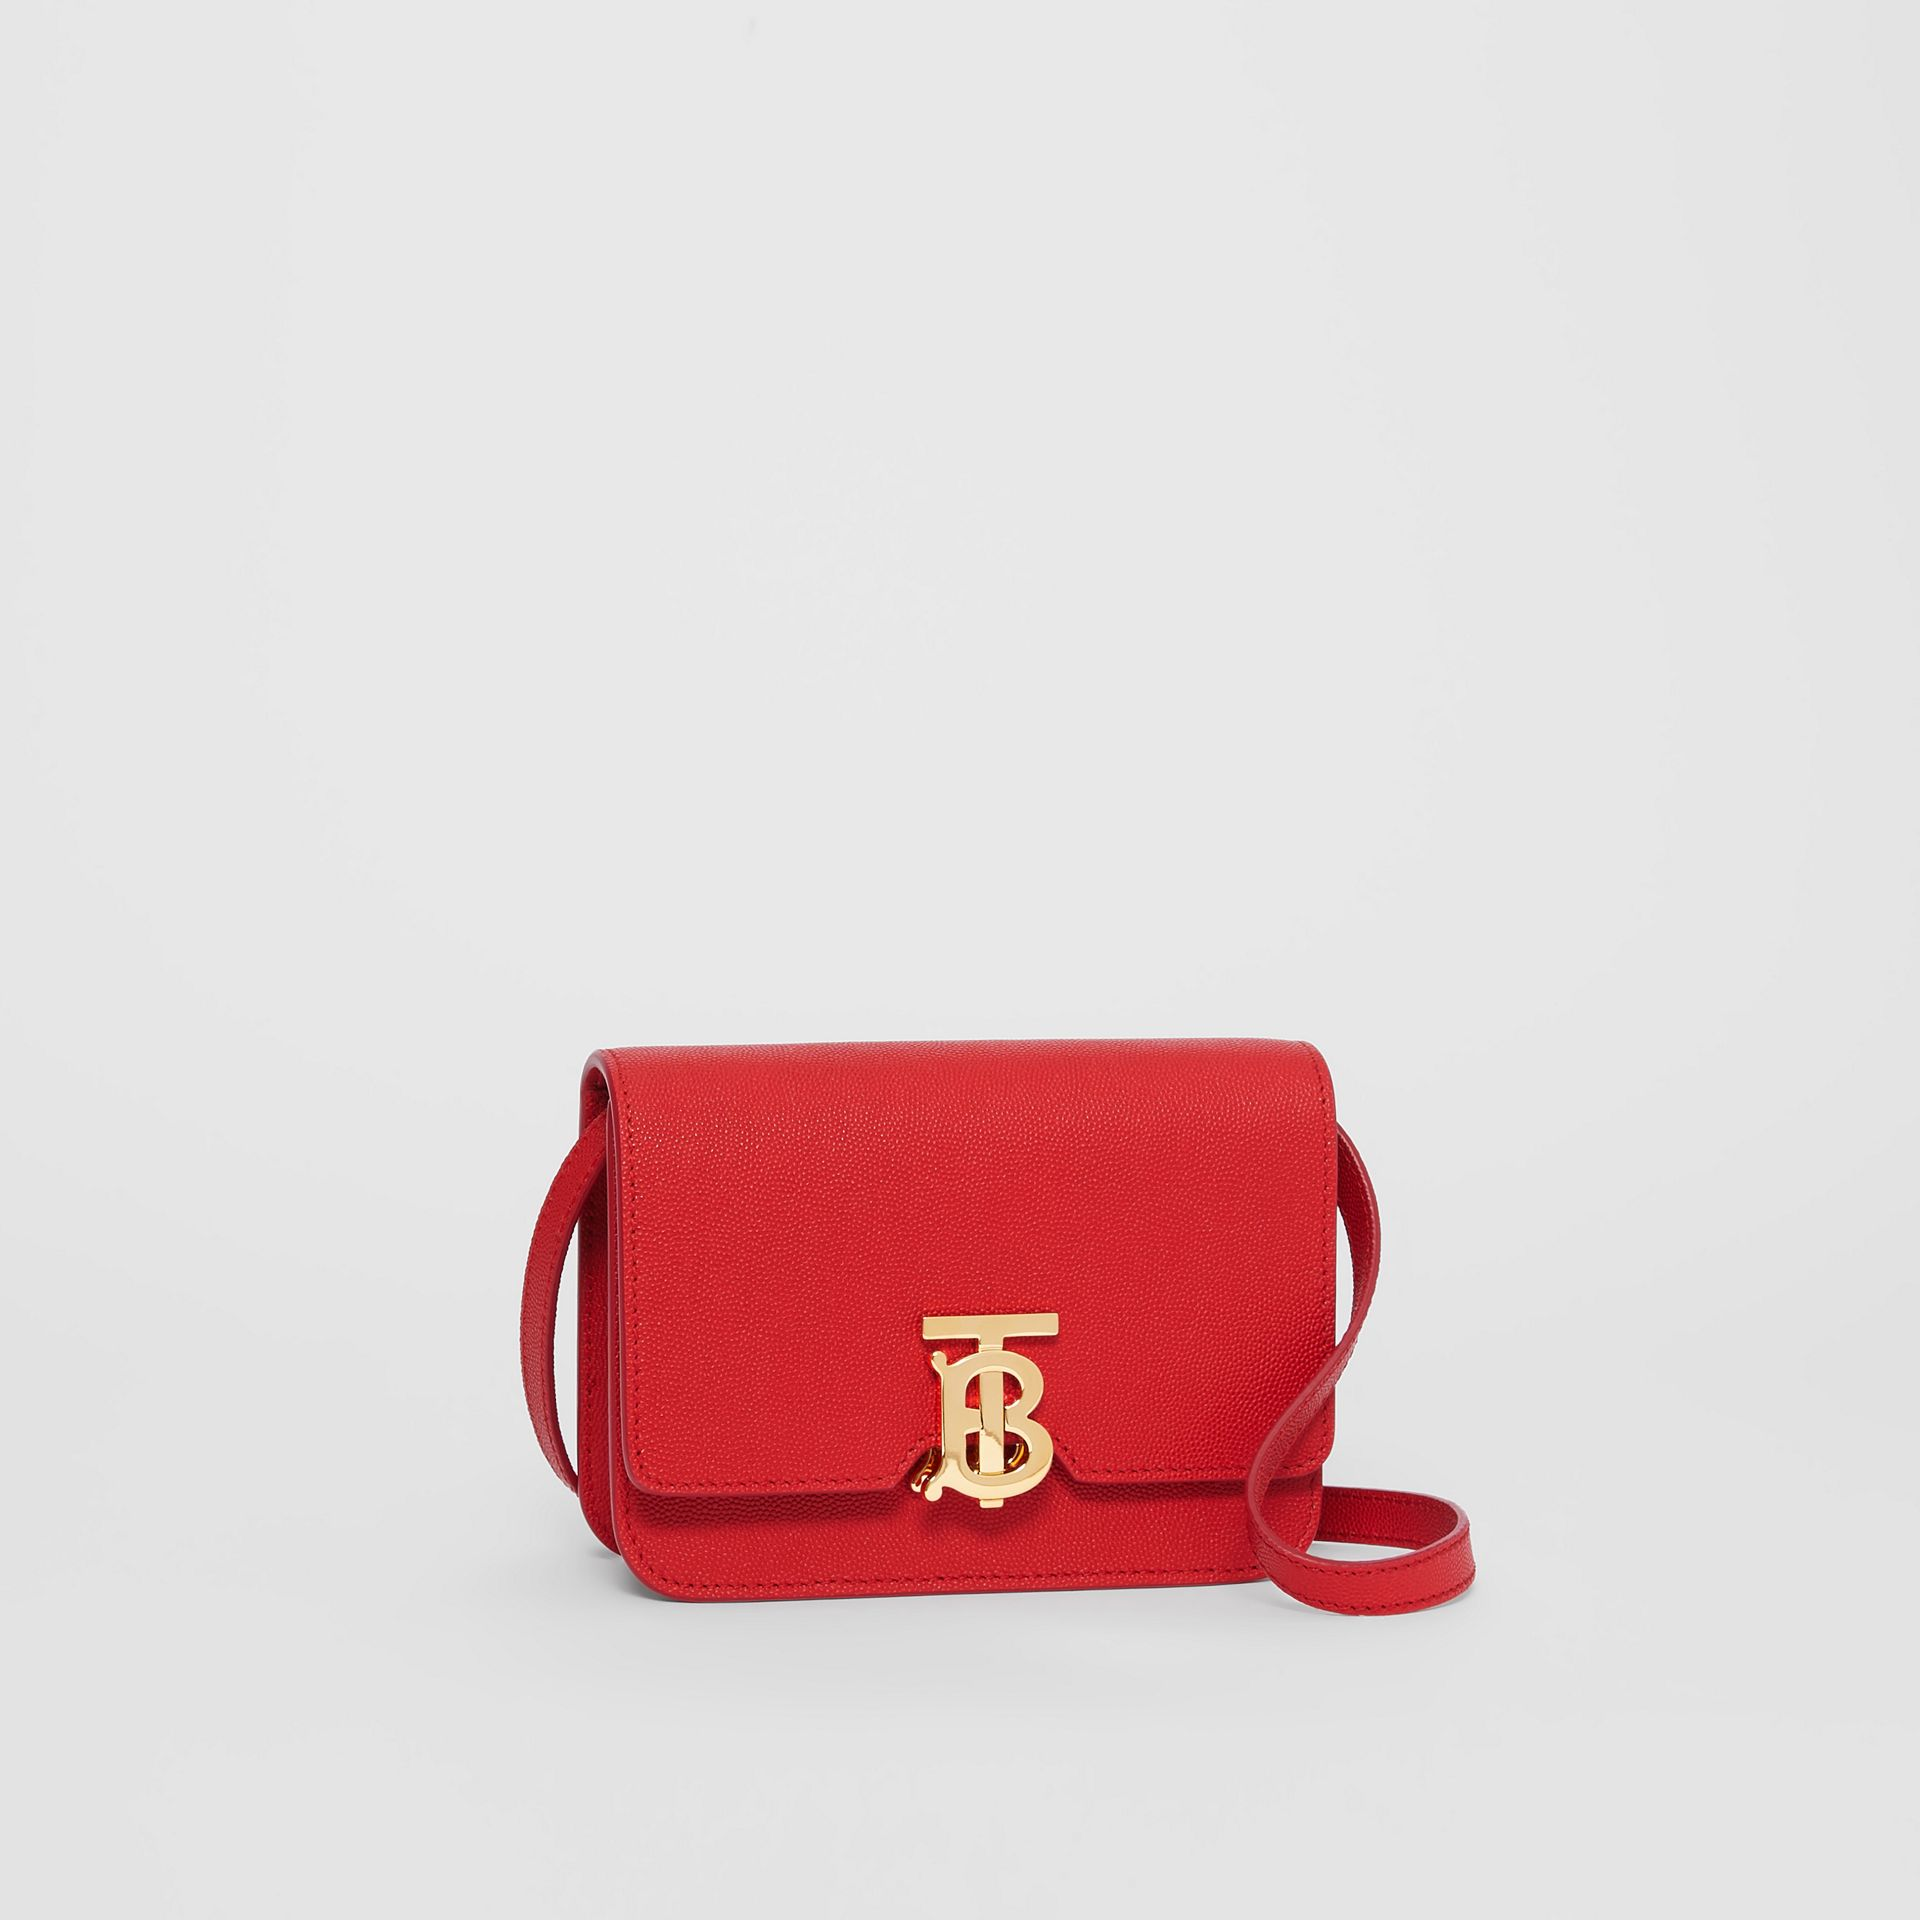 Mini Grainy Leather TB Bag in Bright Red - Women | Burberry Singapore - gallery image 4